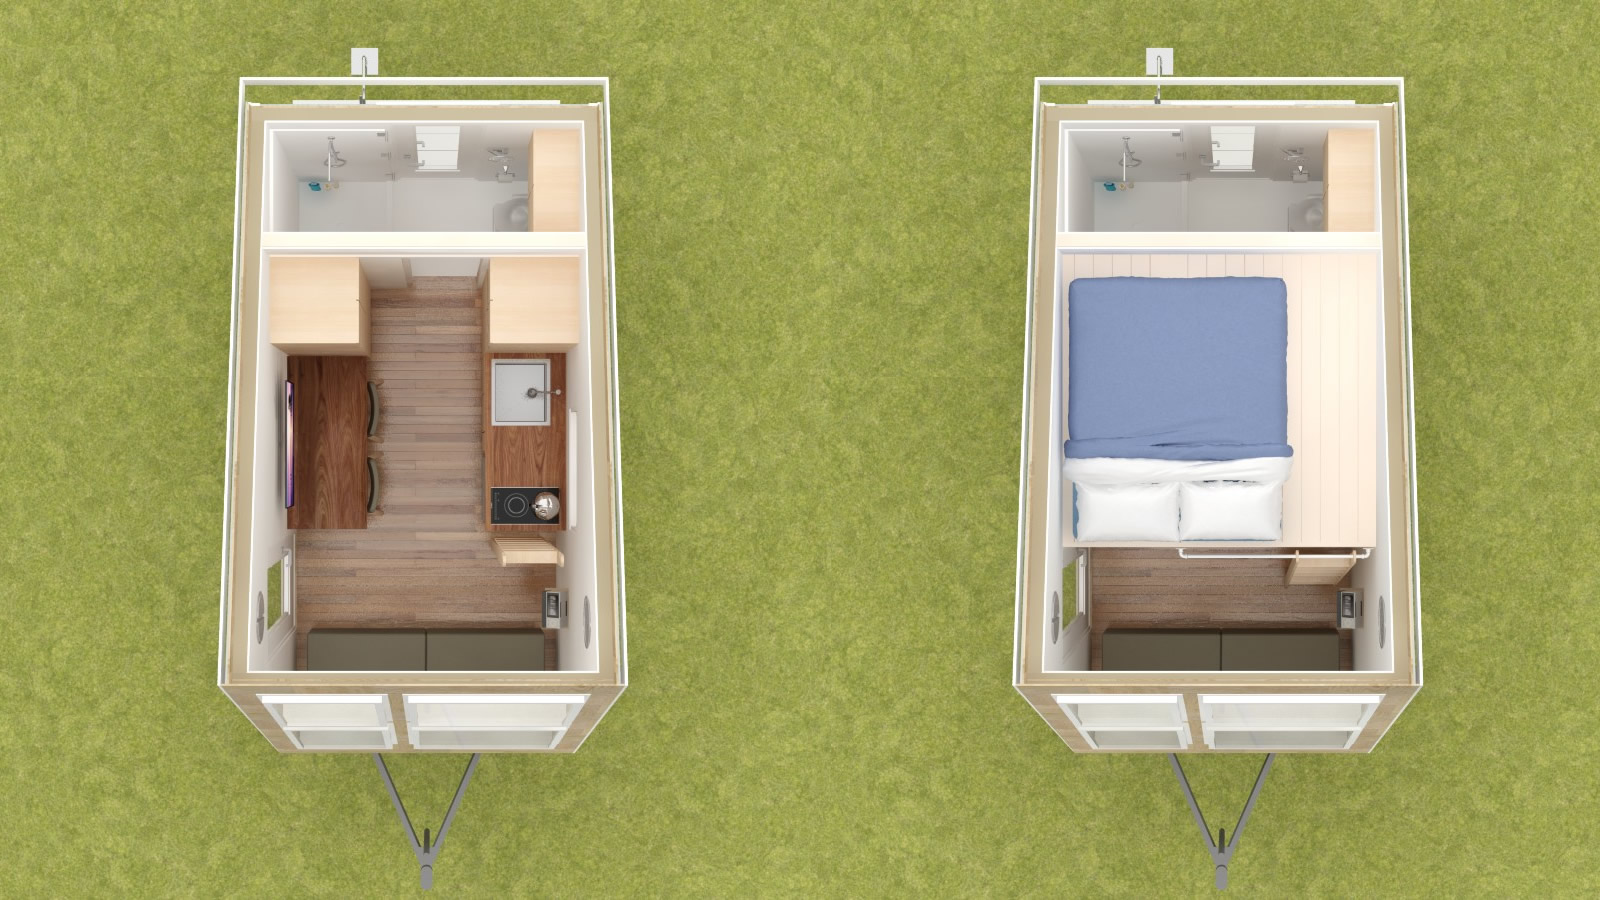 anchor bay 16 tiny house plans. Black Bedroom Furniture Sets. Home Design Ideas